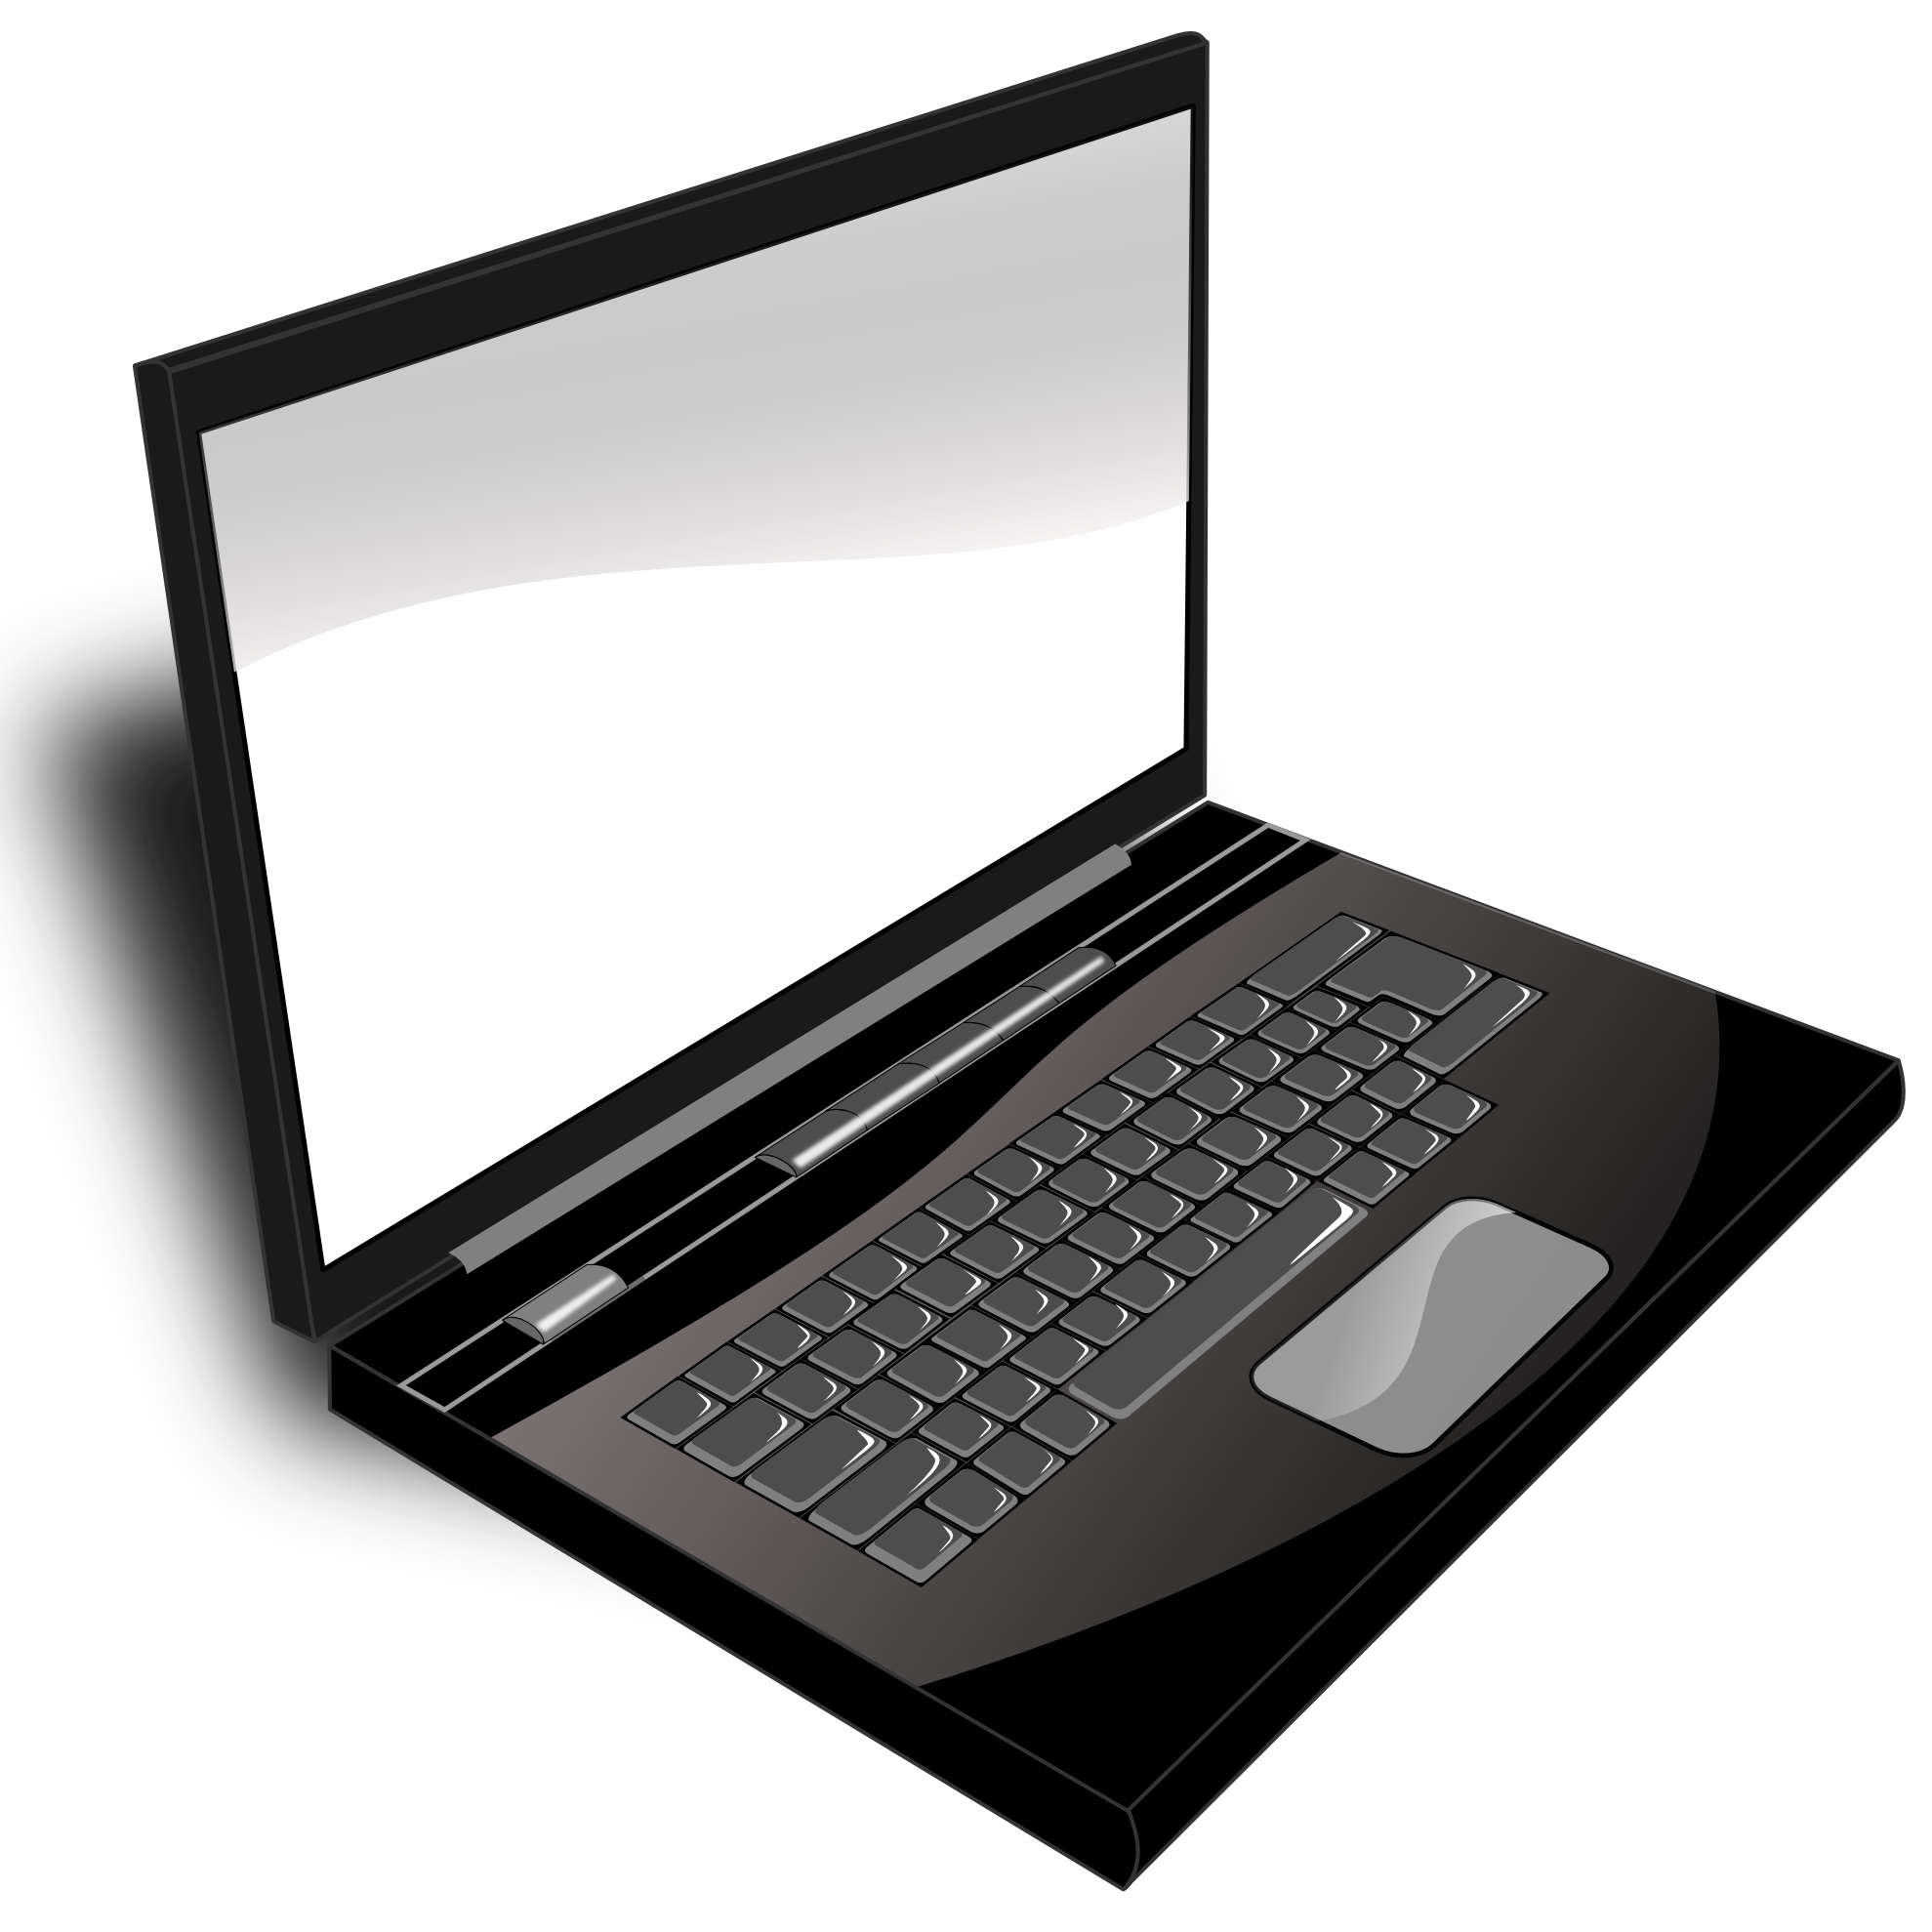 Laptop clipart #7, Download drawings